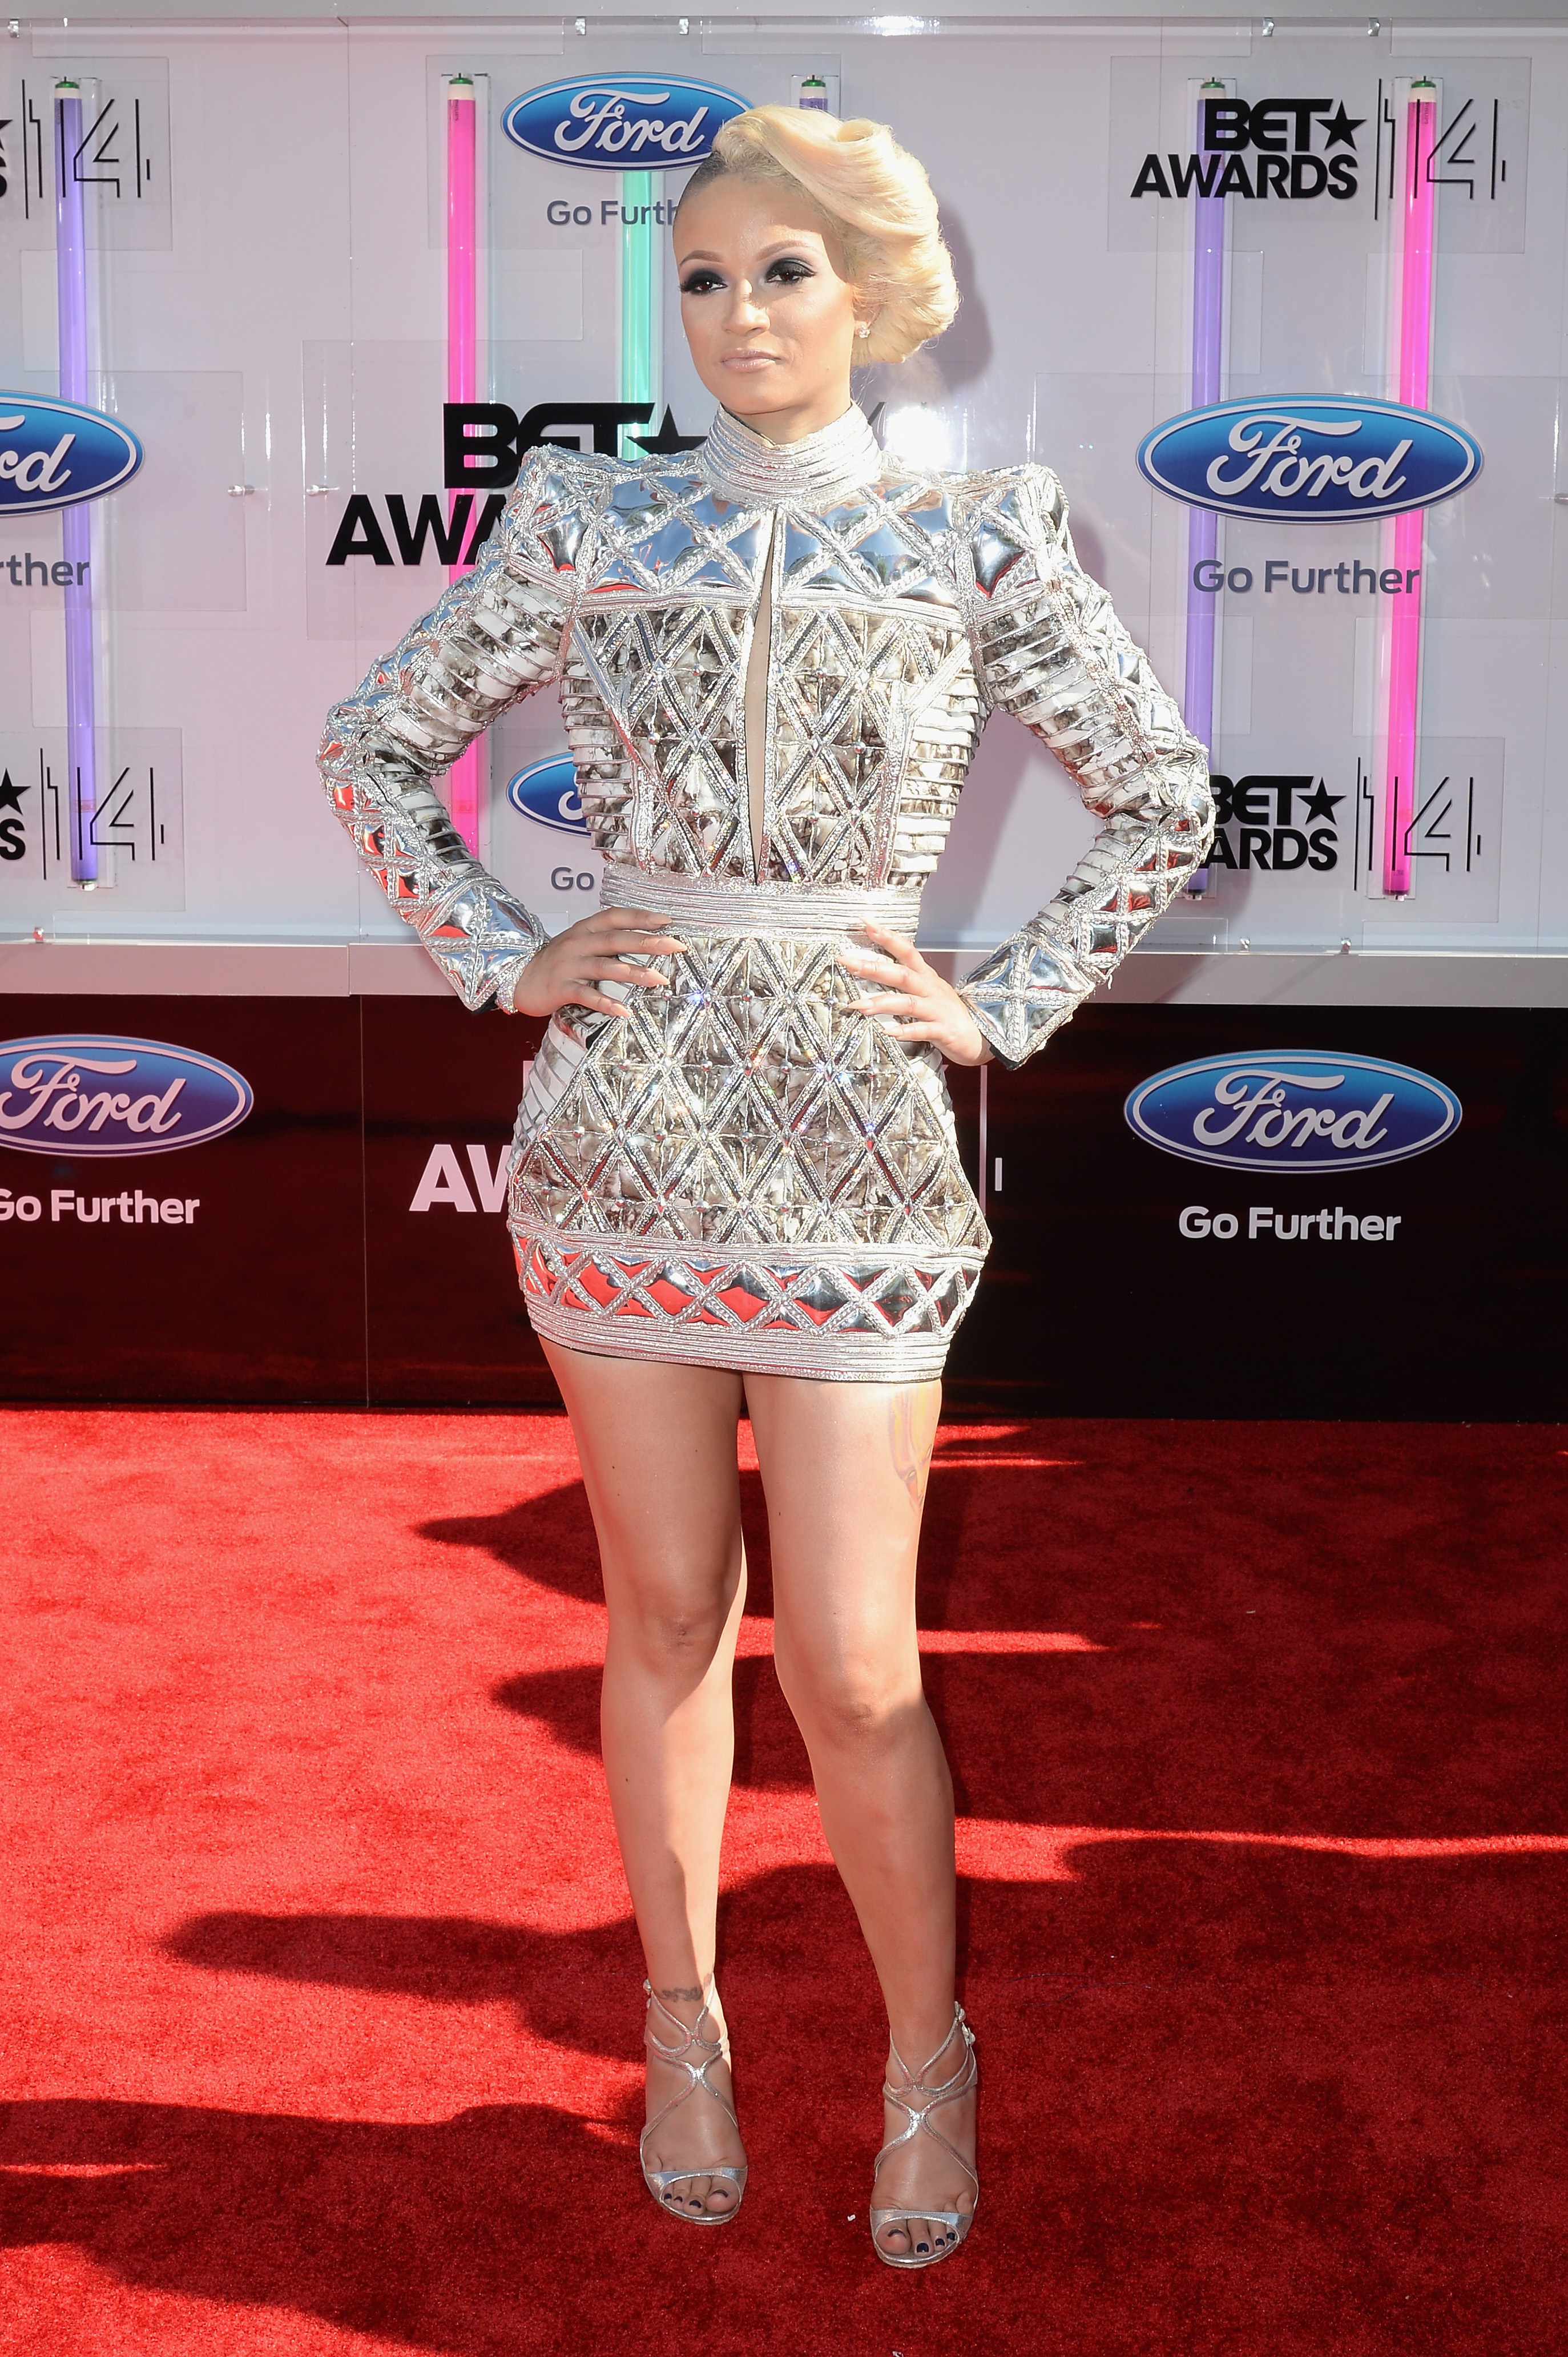 BET Awards' top 10 worst red carpet looks [GALLERY]